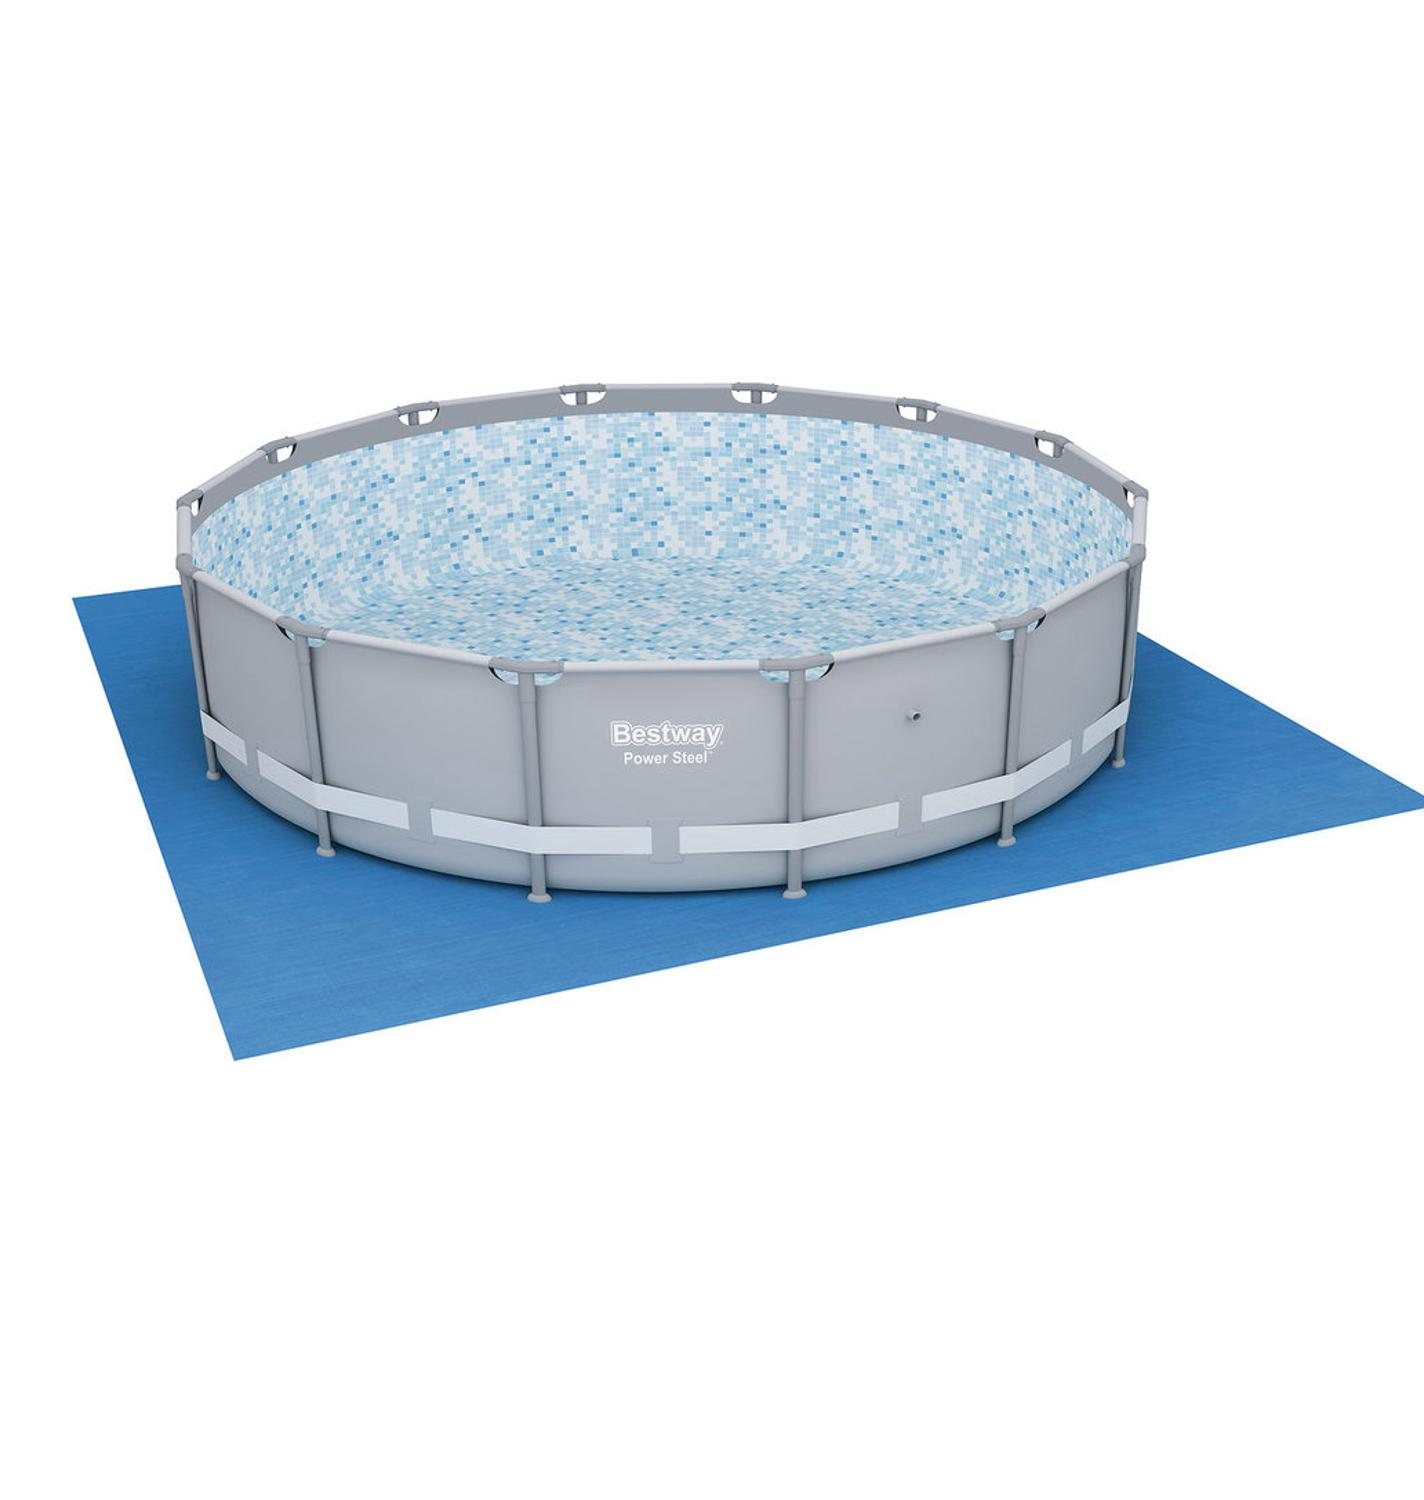 Mat Under The Pool, 488 х488 Cm, Accessory For Swimming Pool, Substrate, Protect The Bottom Basin, Bestway, Item No. 58003